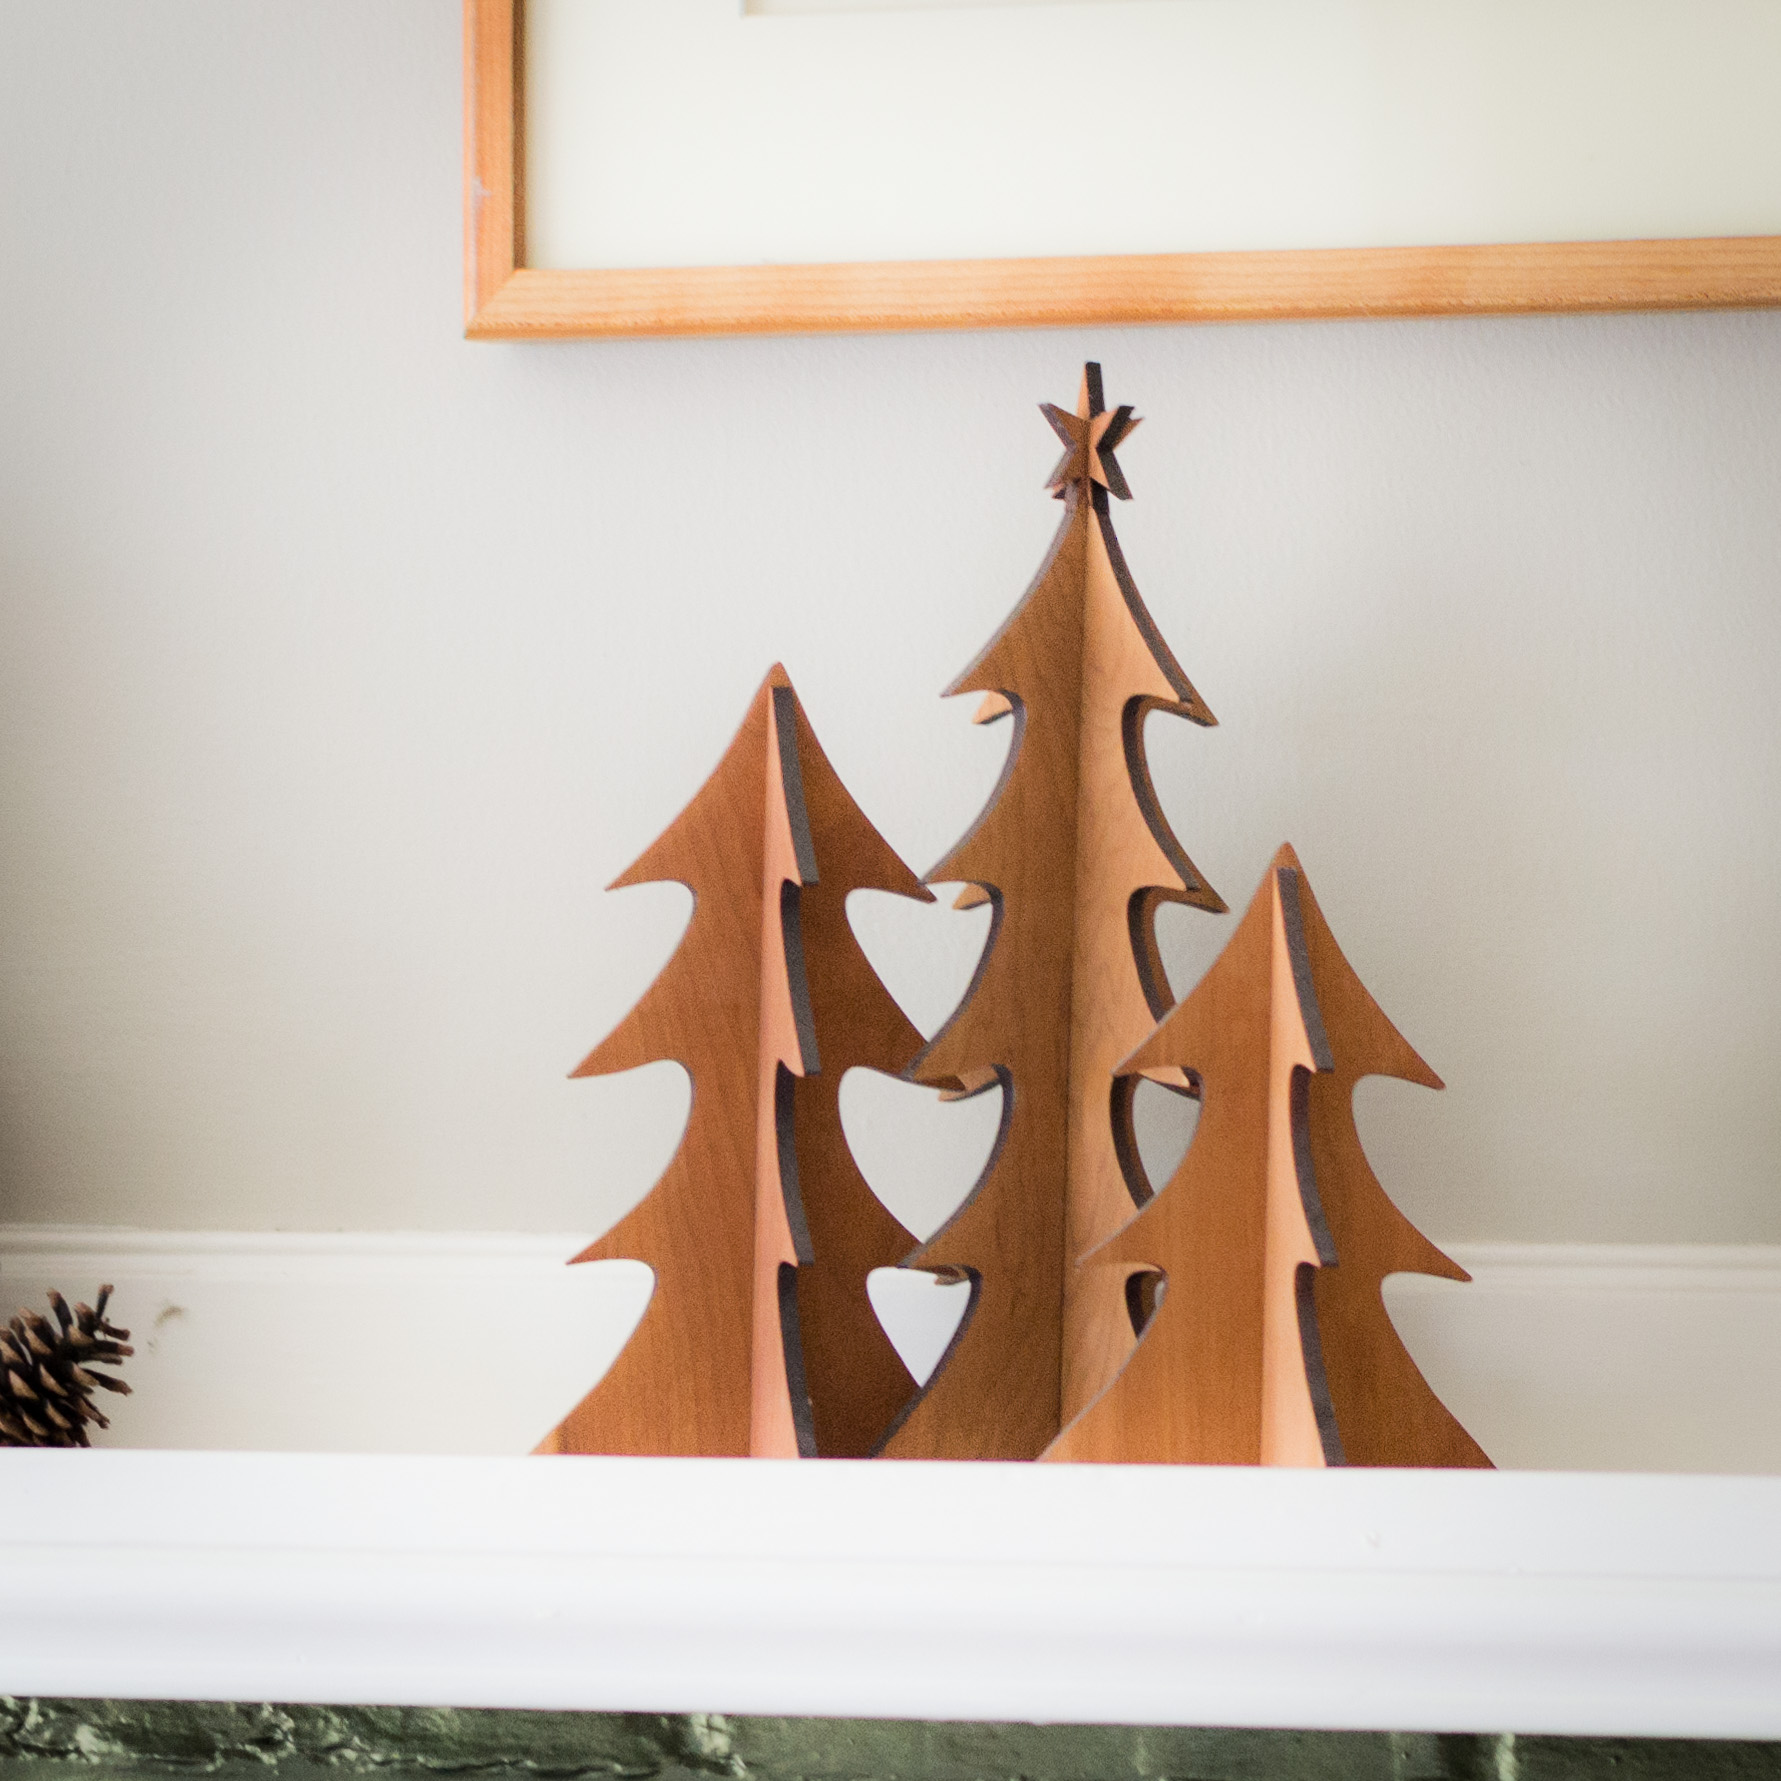 1. Set of Trees - Solid cherry wood trees gracefully decorate the table or mantle. The trees slot together making them easy to store, and easy to assemble.